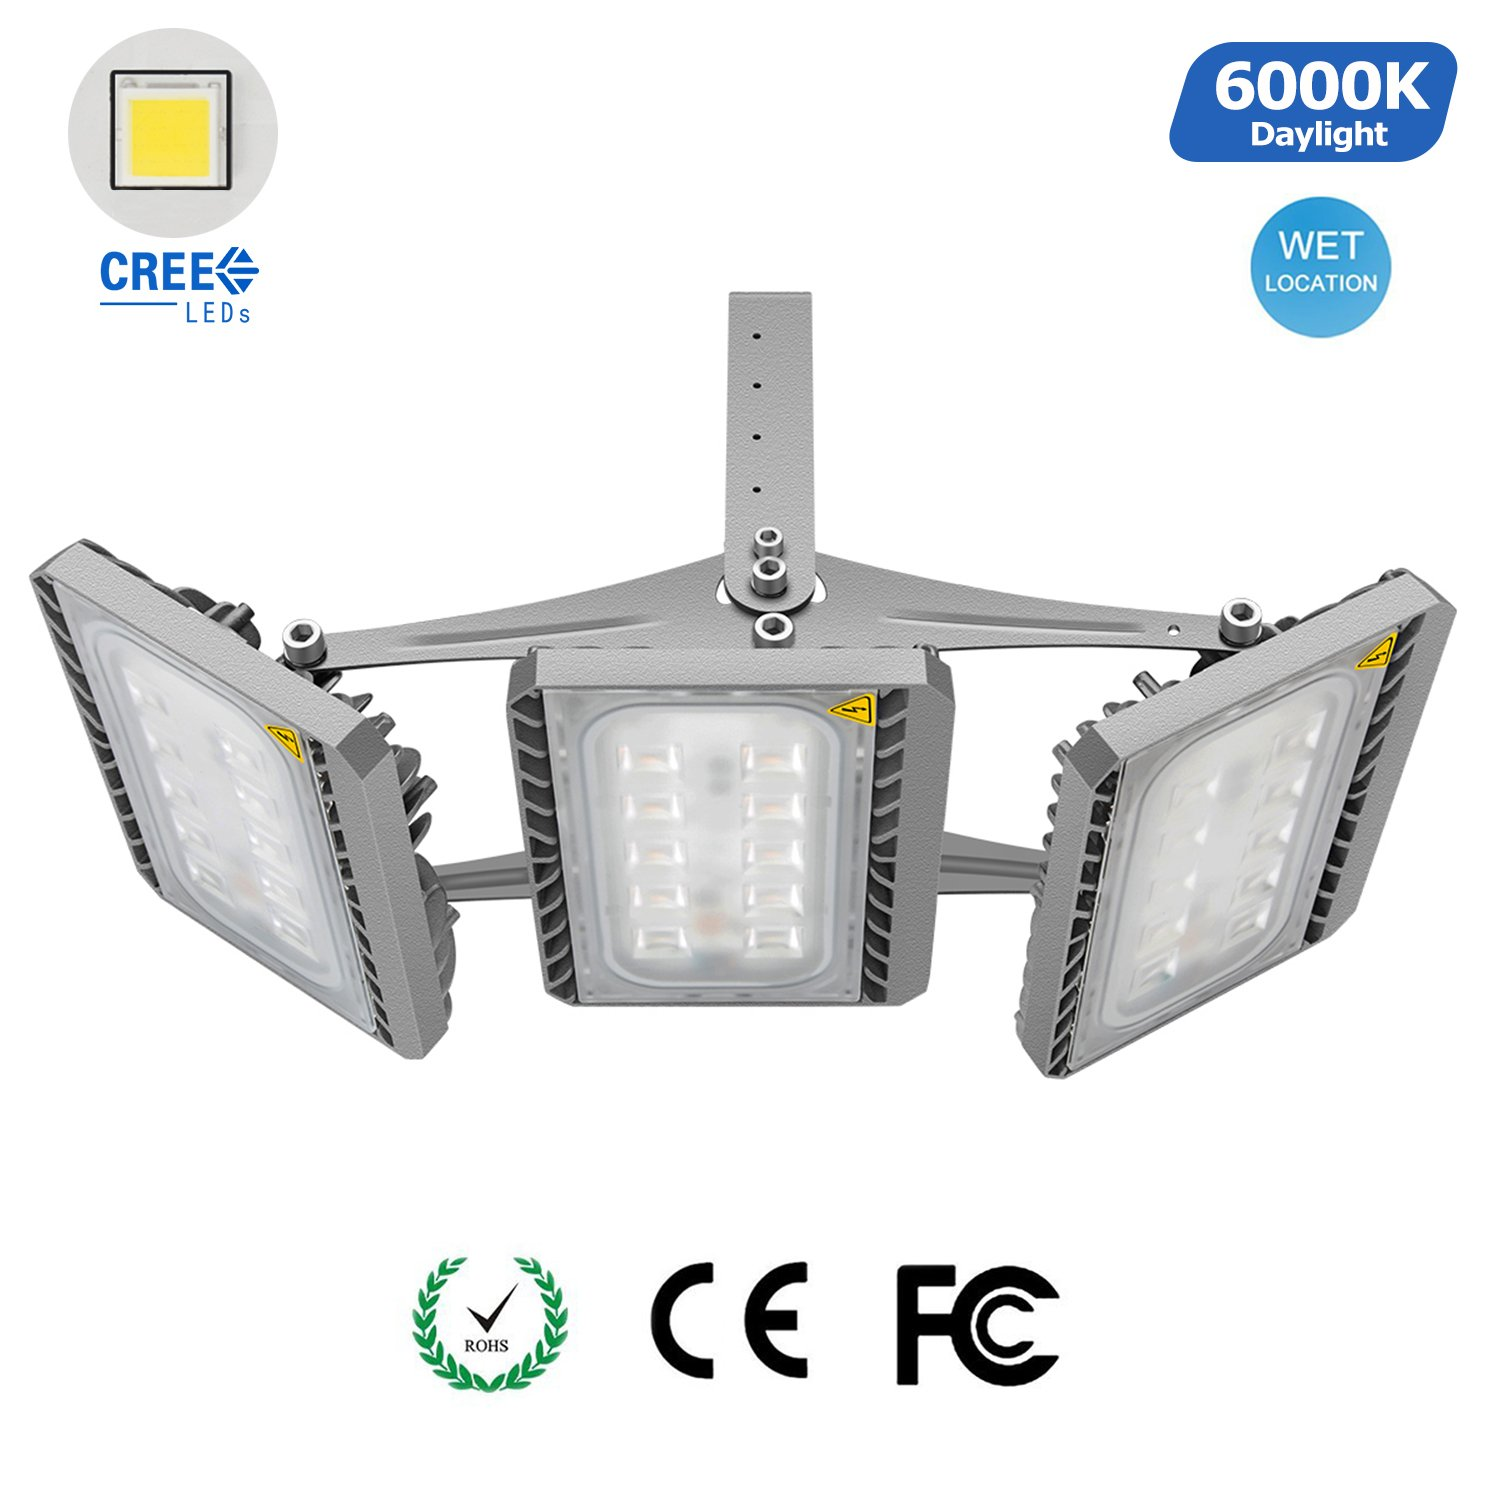 150W LED Flood Light Outdoor, CREE LED Source, 13500lm, 6000K Daylight White, 3-Head Security Lights Waterproof Floodlight